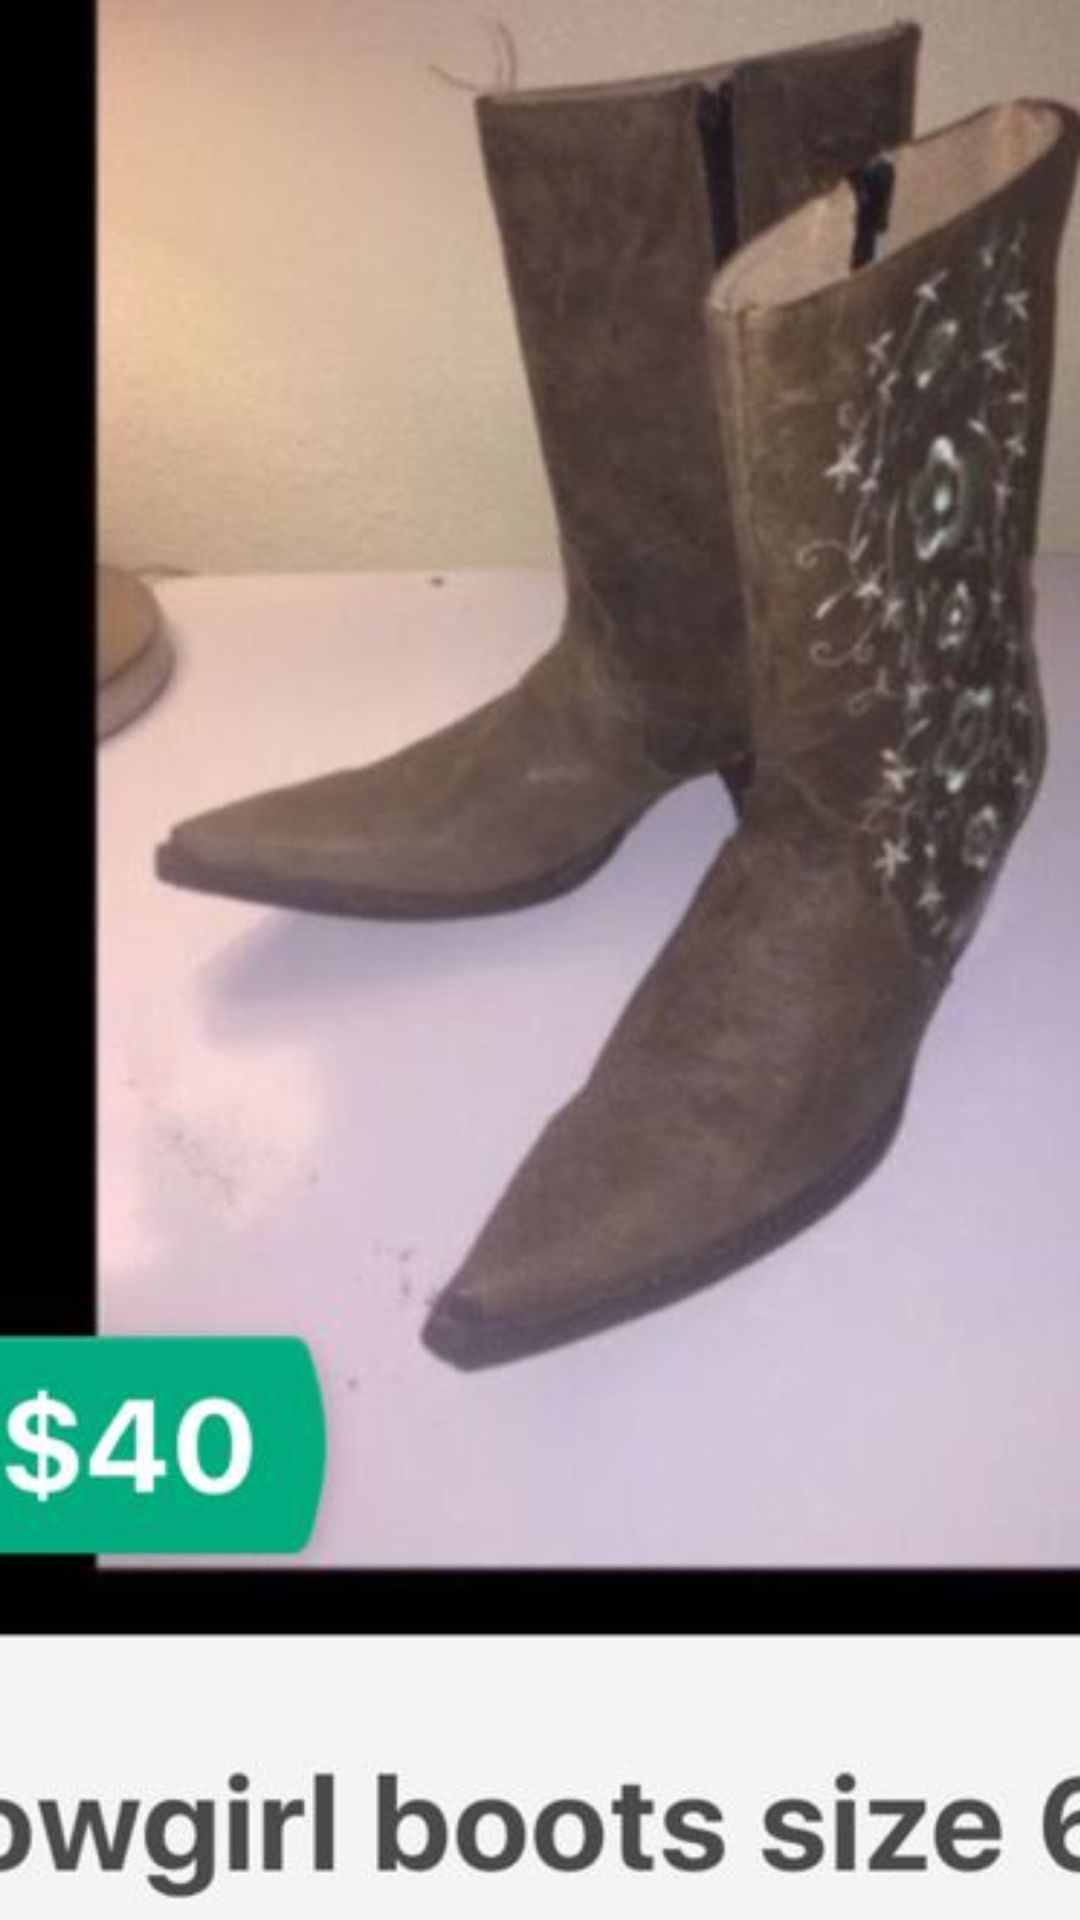 Boots size 6 new